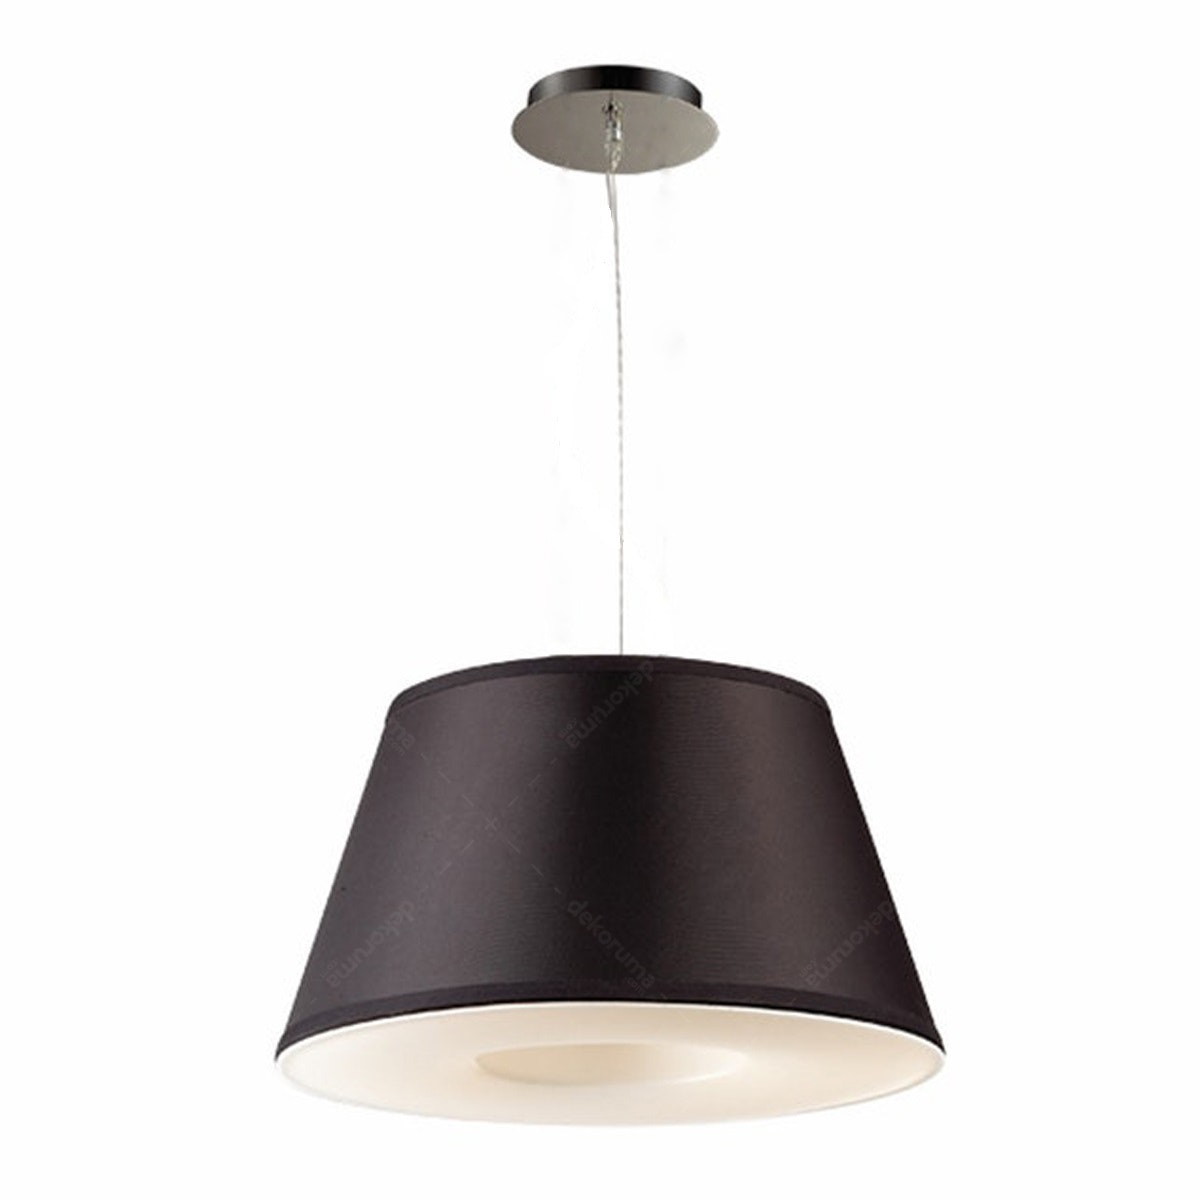 3+Projects Lampu Gantung Pendant Lamp Black T/C Acrylic 3+DL-SD7027-1-460-BL-VG